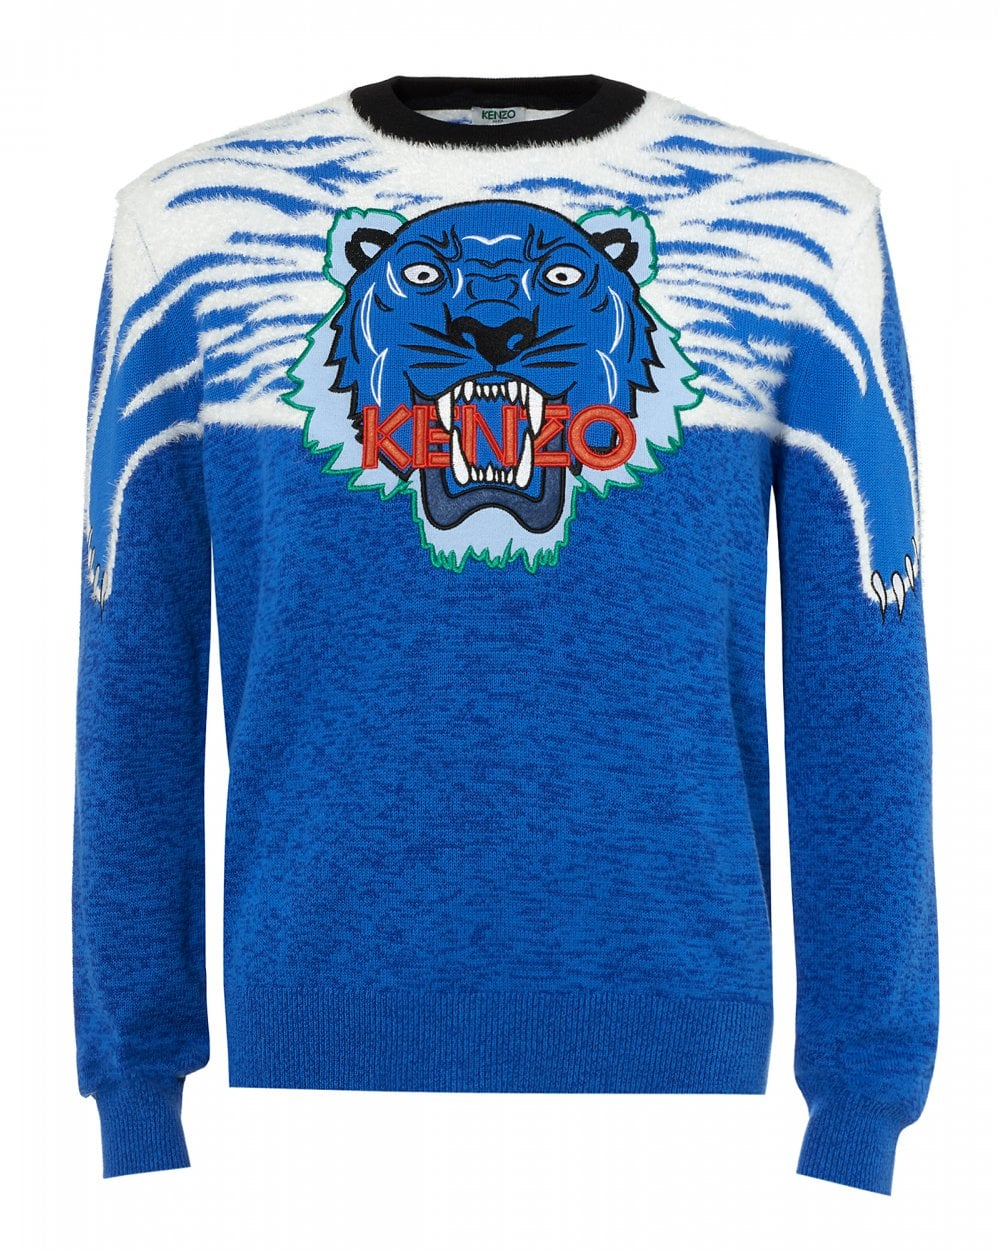 e369ac425 Kenzo Mens Claw Tiger Jumper, French Blue Sweater